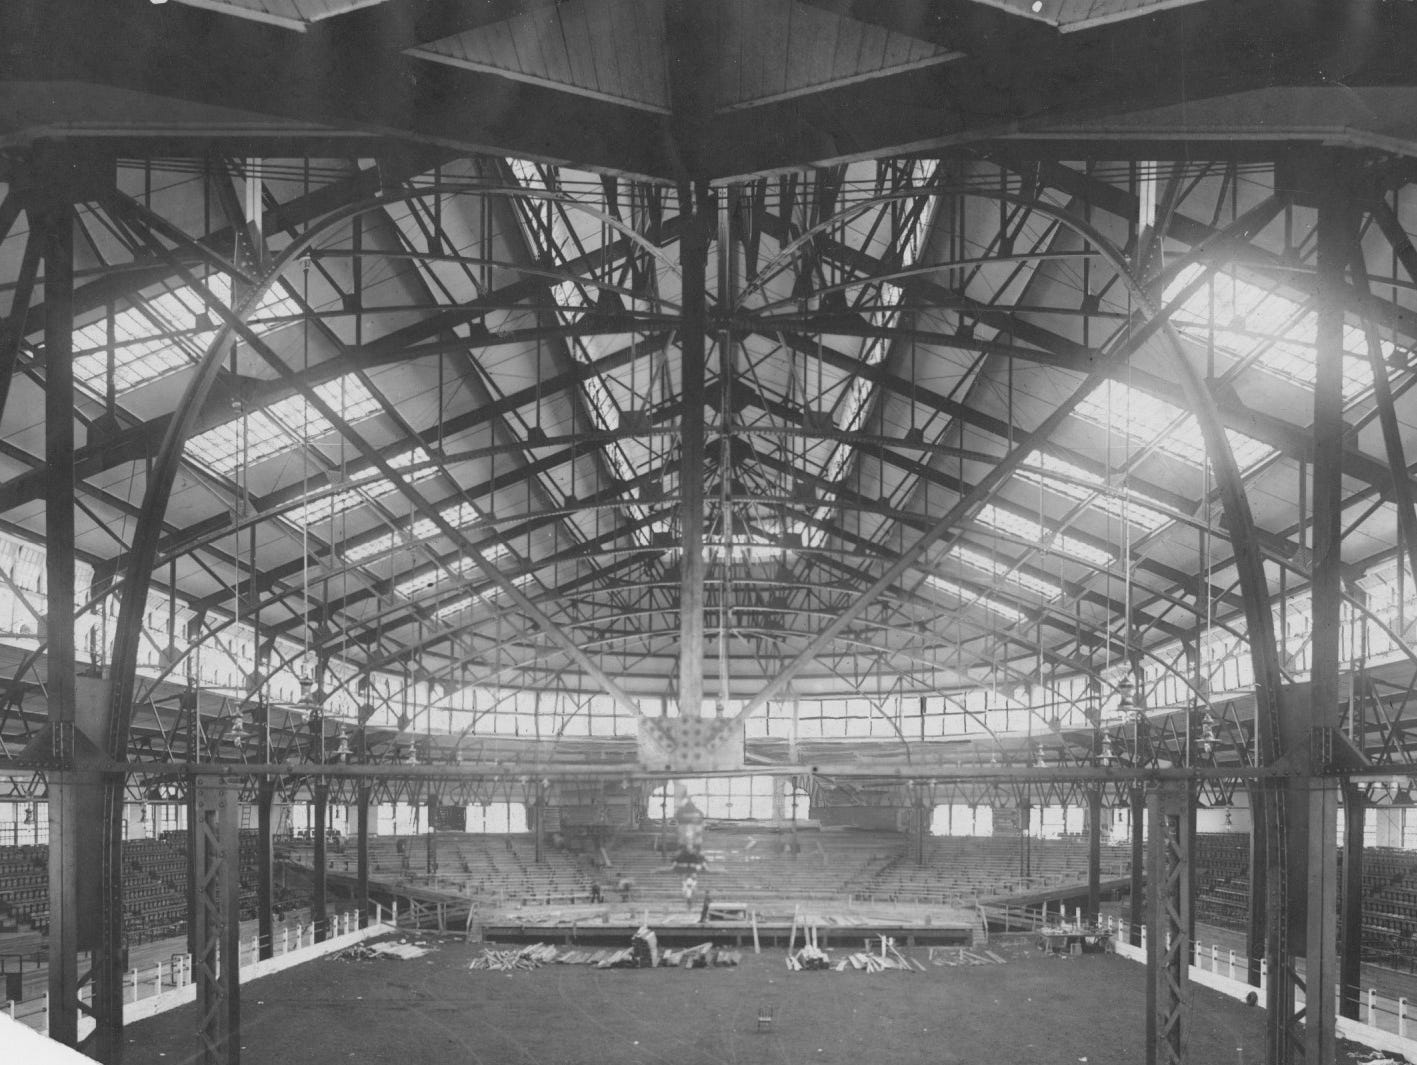 Interior of the original Indiana State Fairgrounds coliseum in 1915.